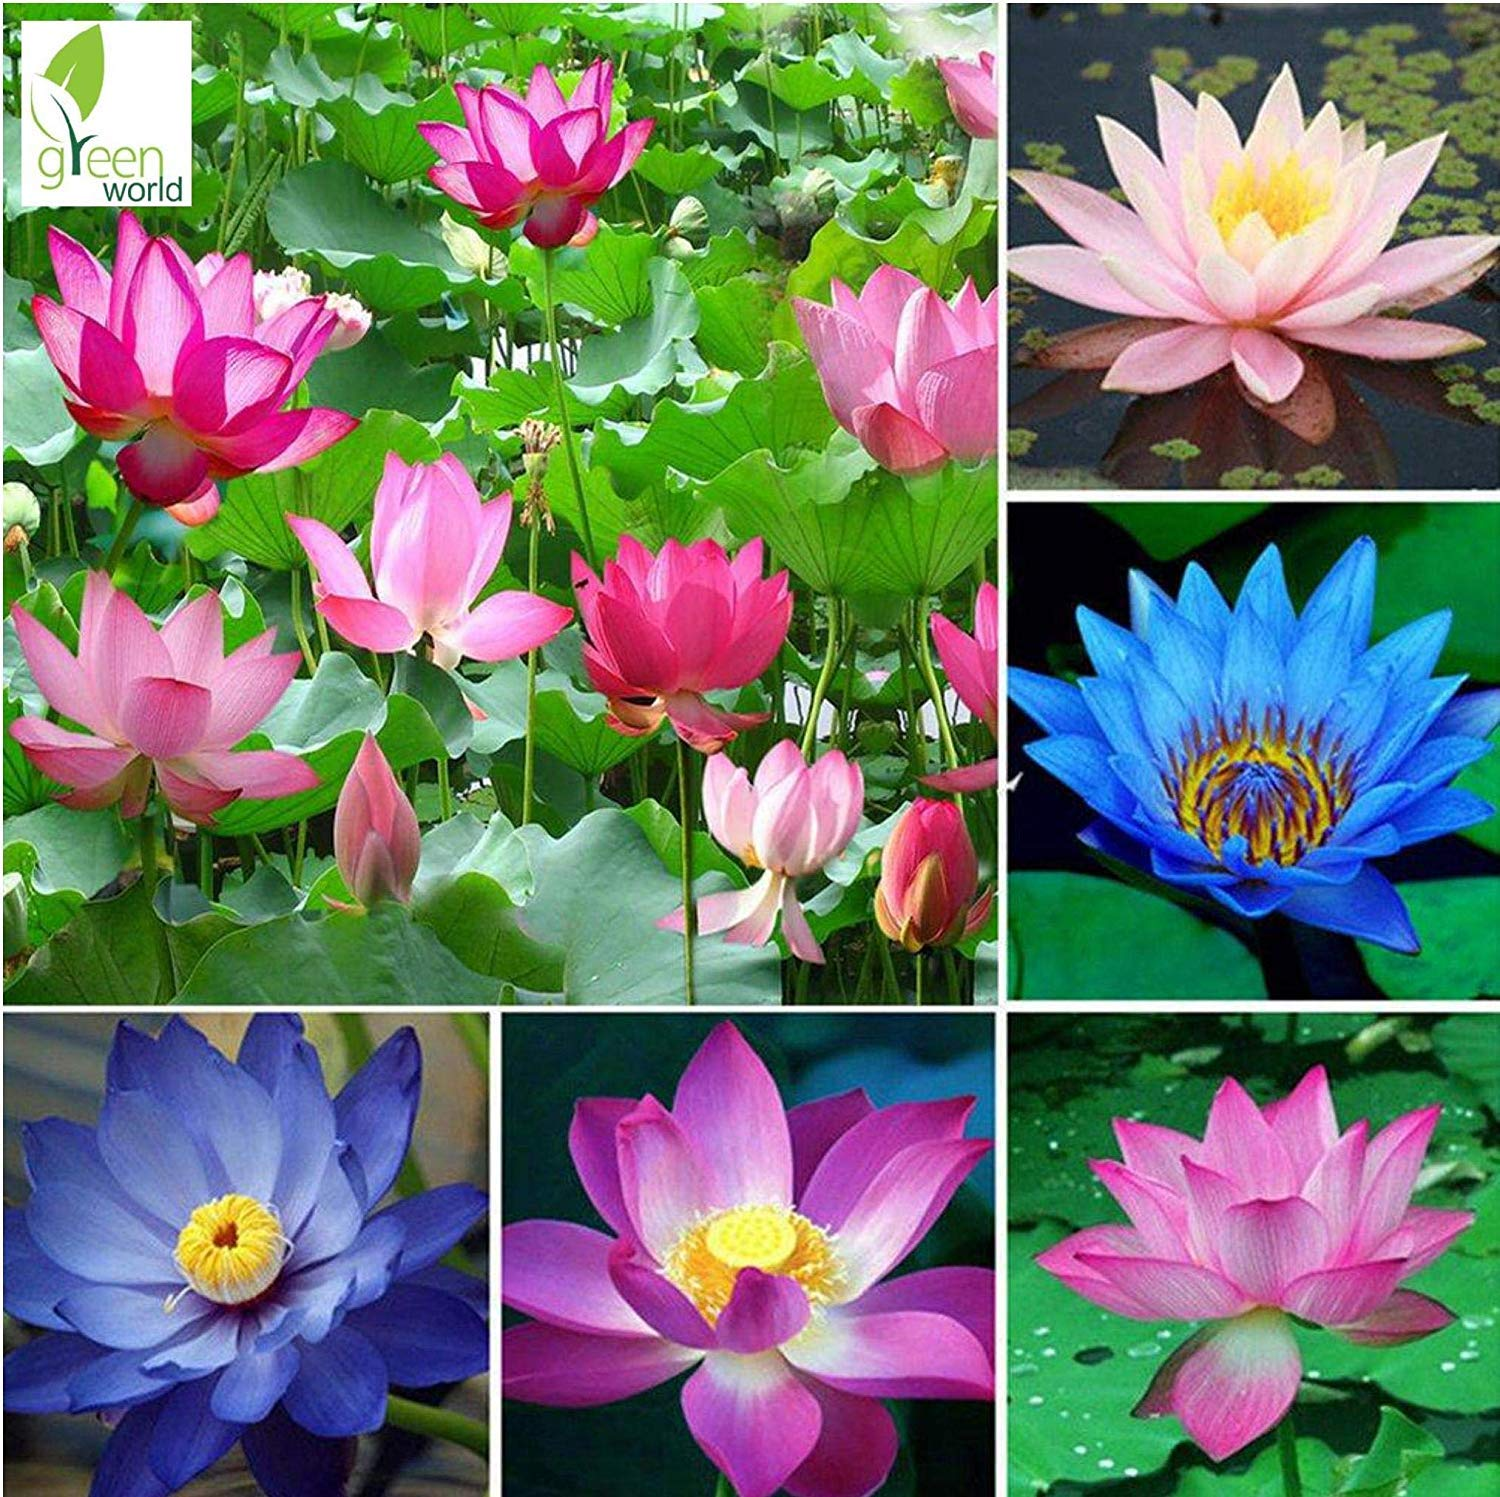 Green World Lotus Kamal Flower Mixed Colour Seeds 10 Seeds Amazon In Garden Outdoors